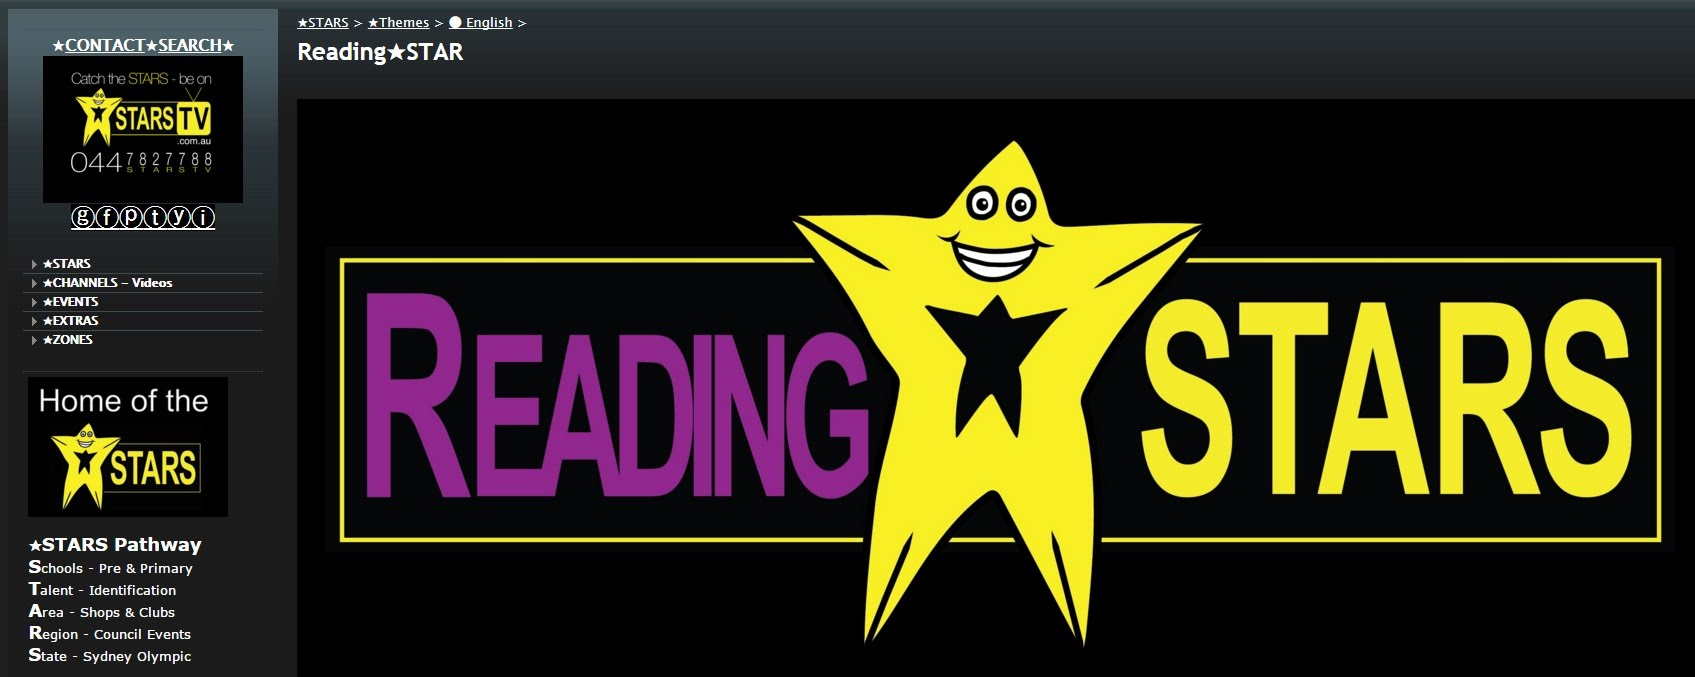 ReadingSTAR